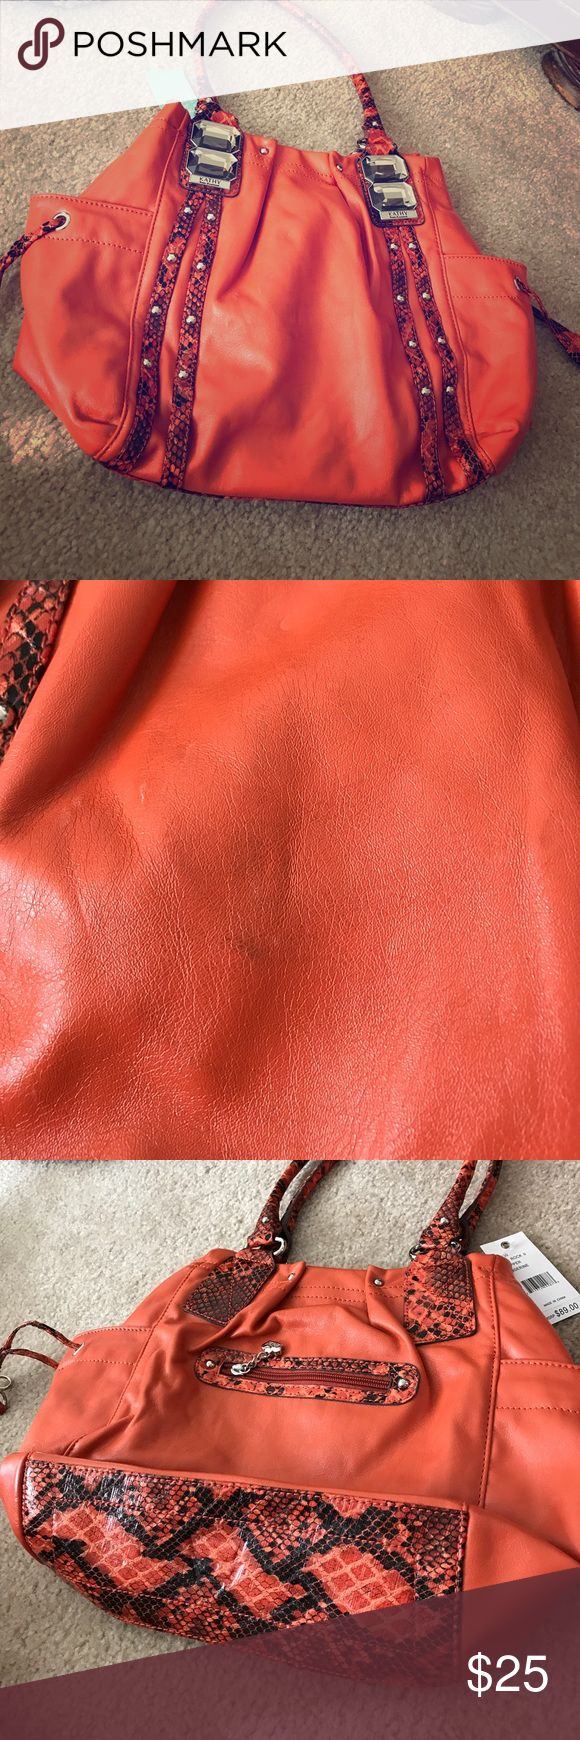 Kathy van Zeeland orange leather & snake print bag Kathy van Zeeland orange leather and snake print purse/bag; NWT. Some scuffs from storage, but they huge. Possibly able to buff out. Kathy Van Zeeland Bags Hobos